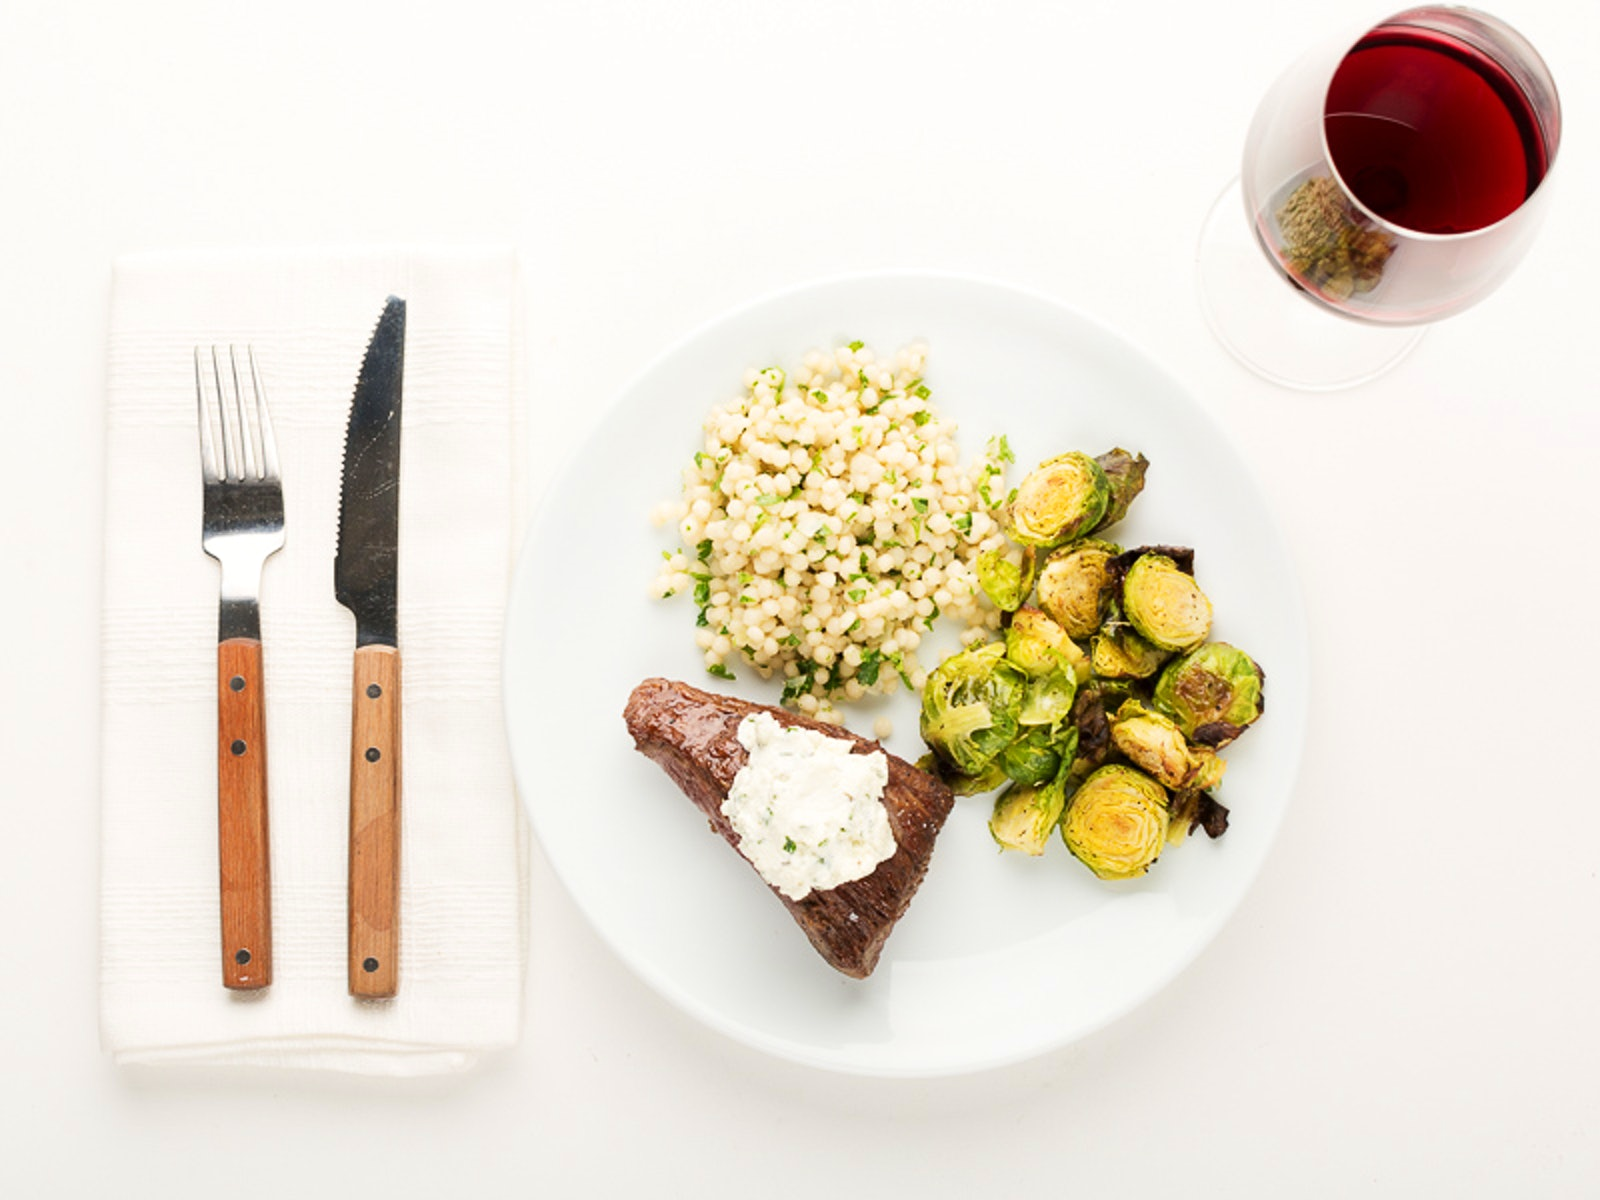 White apron dc calories - Herbed Goat Cheese Steak